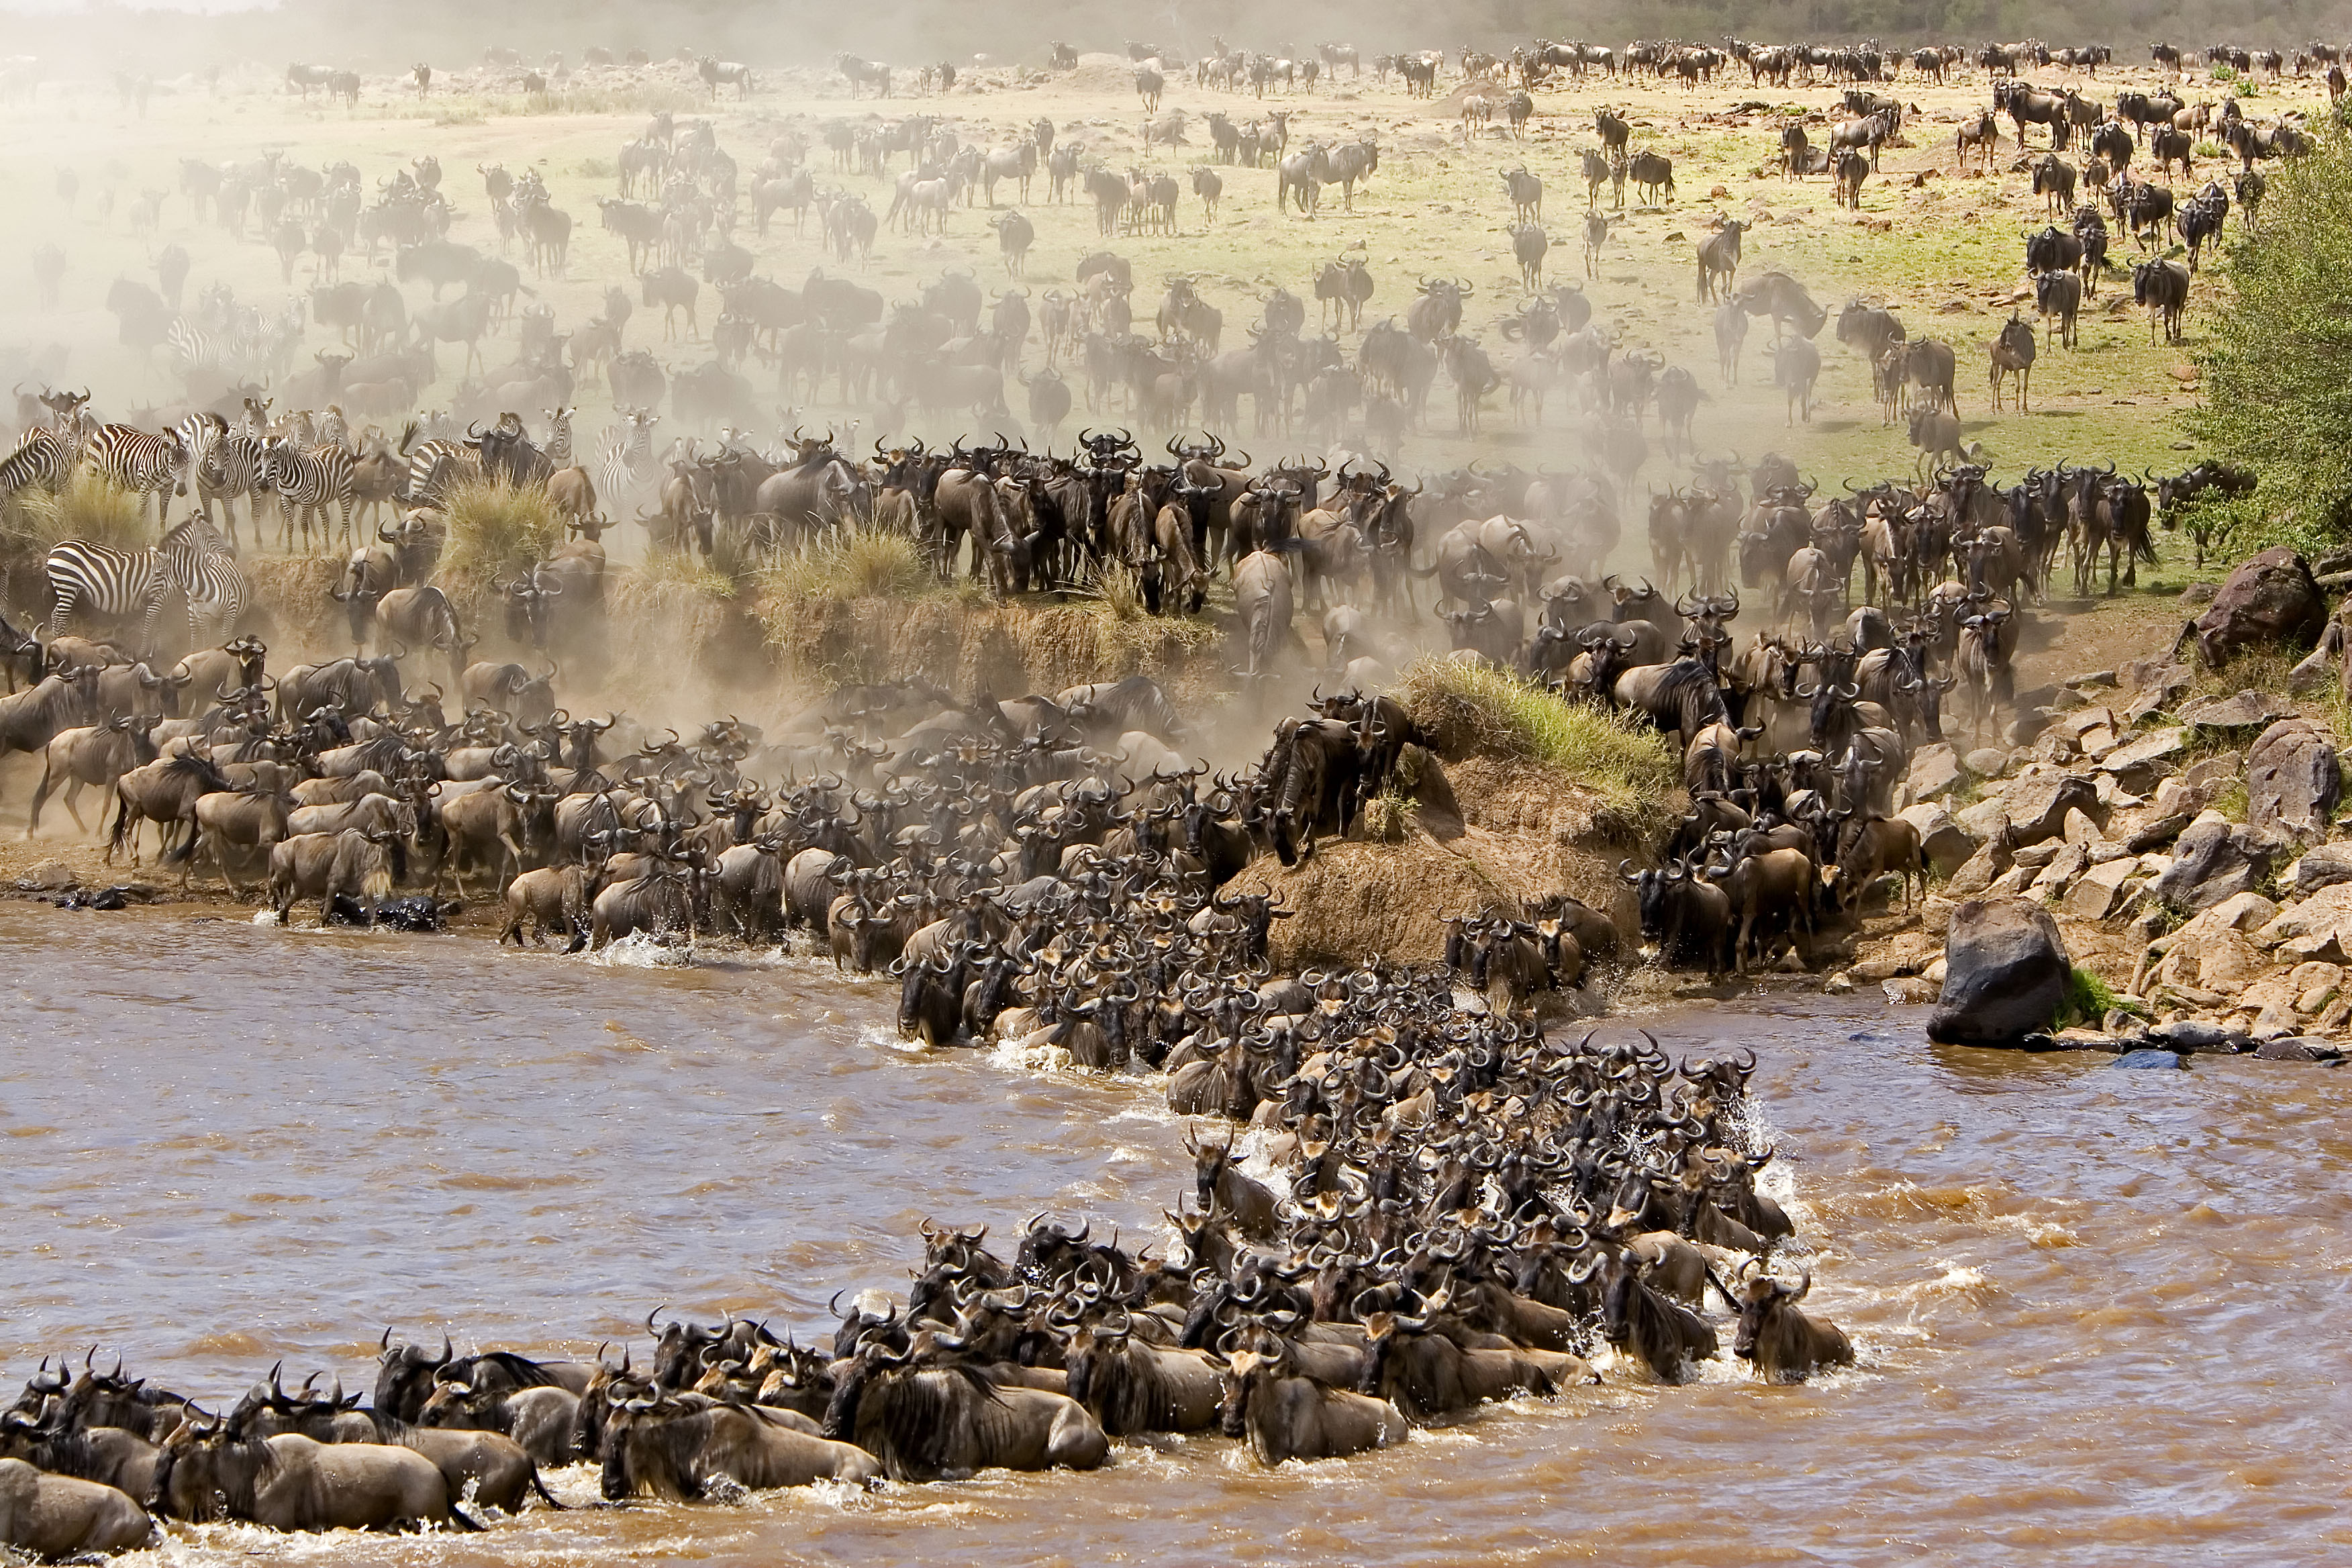 wildebeest-migration-kenya